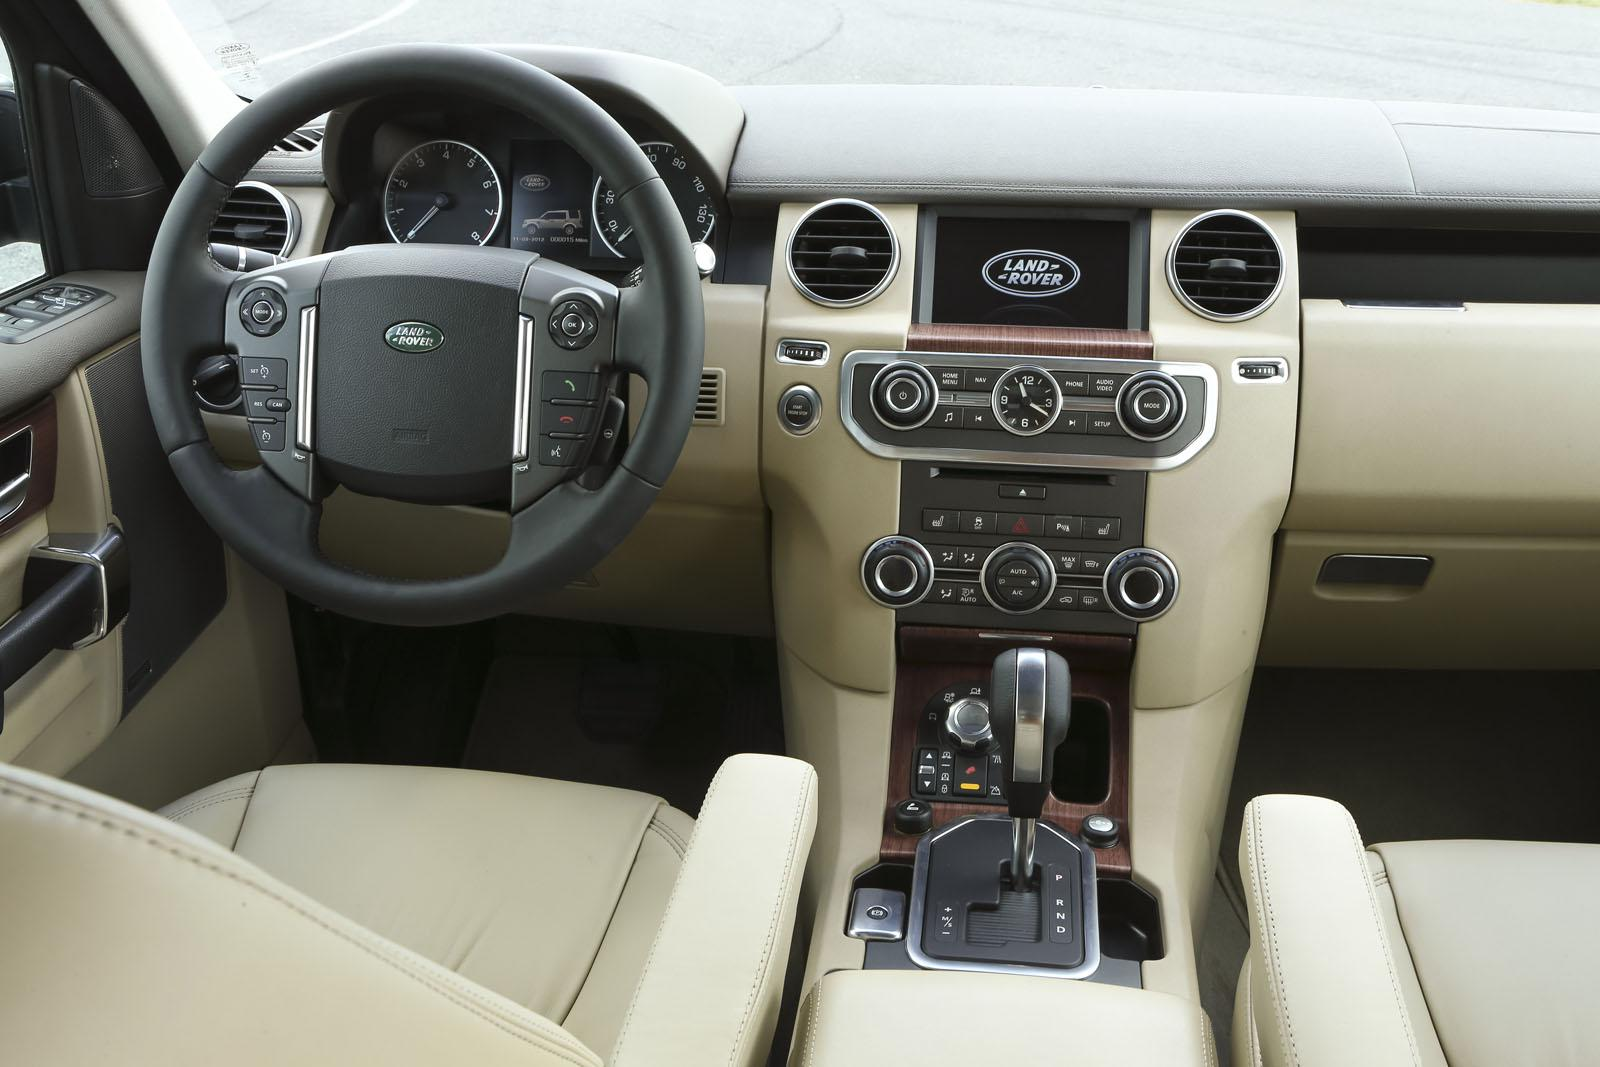 Land Rover Discovery interior #2